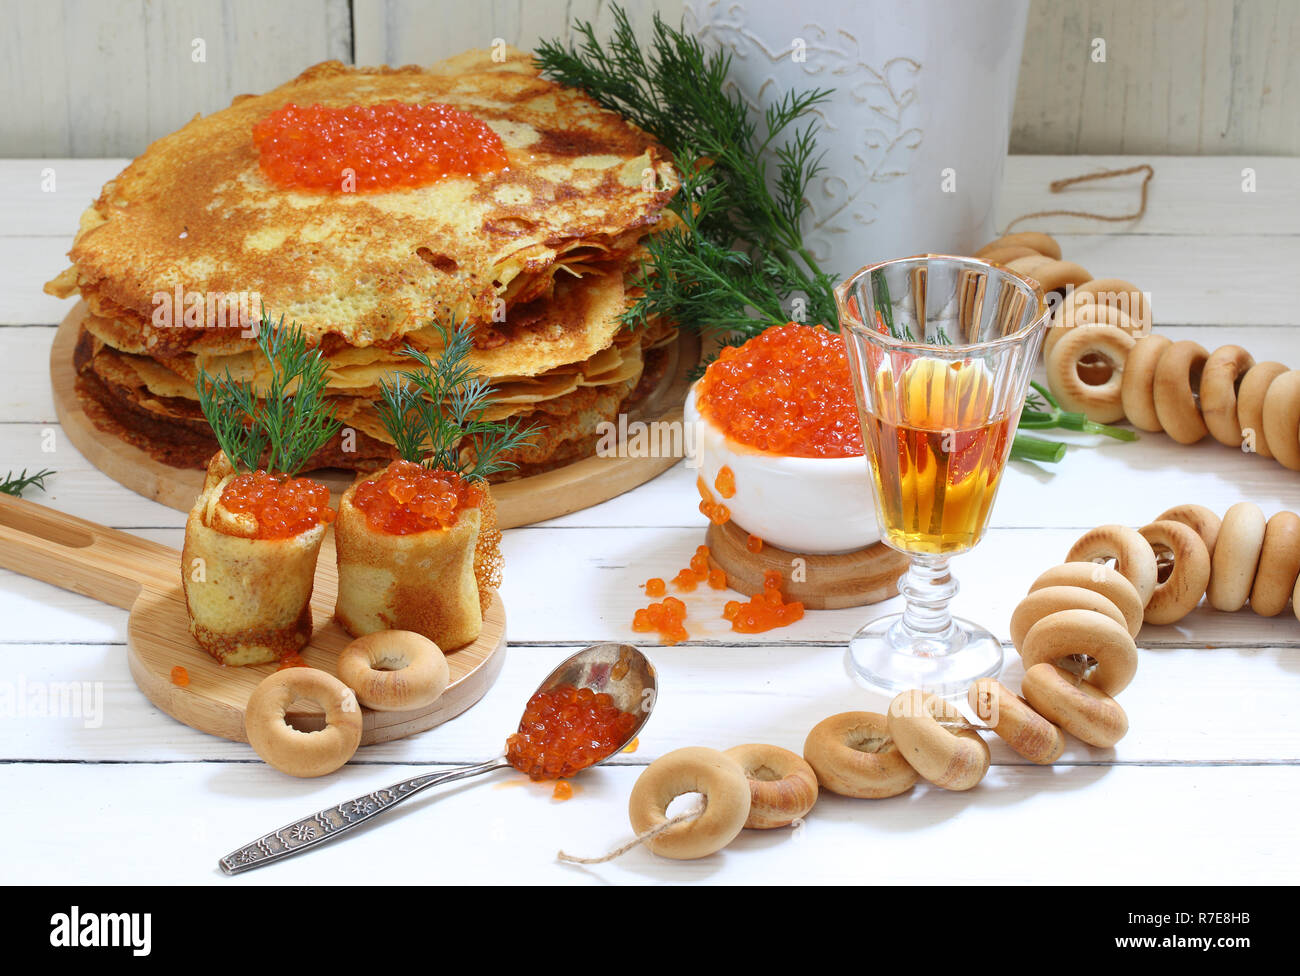 Pancakes with red caviar on a wooden table - Stock Image